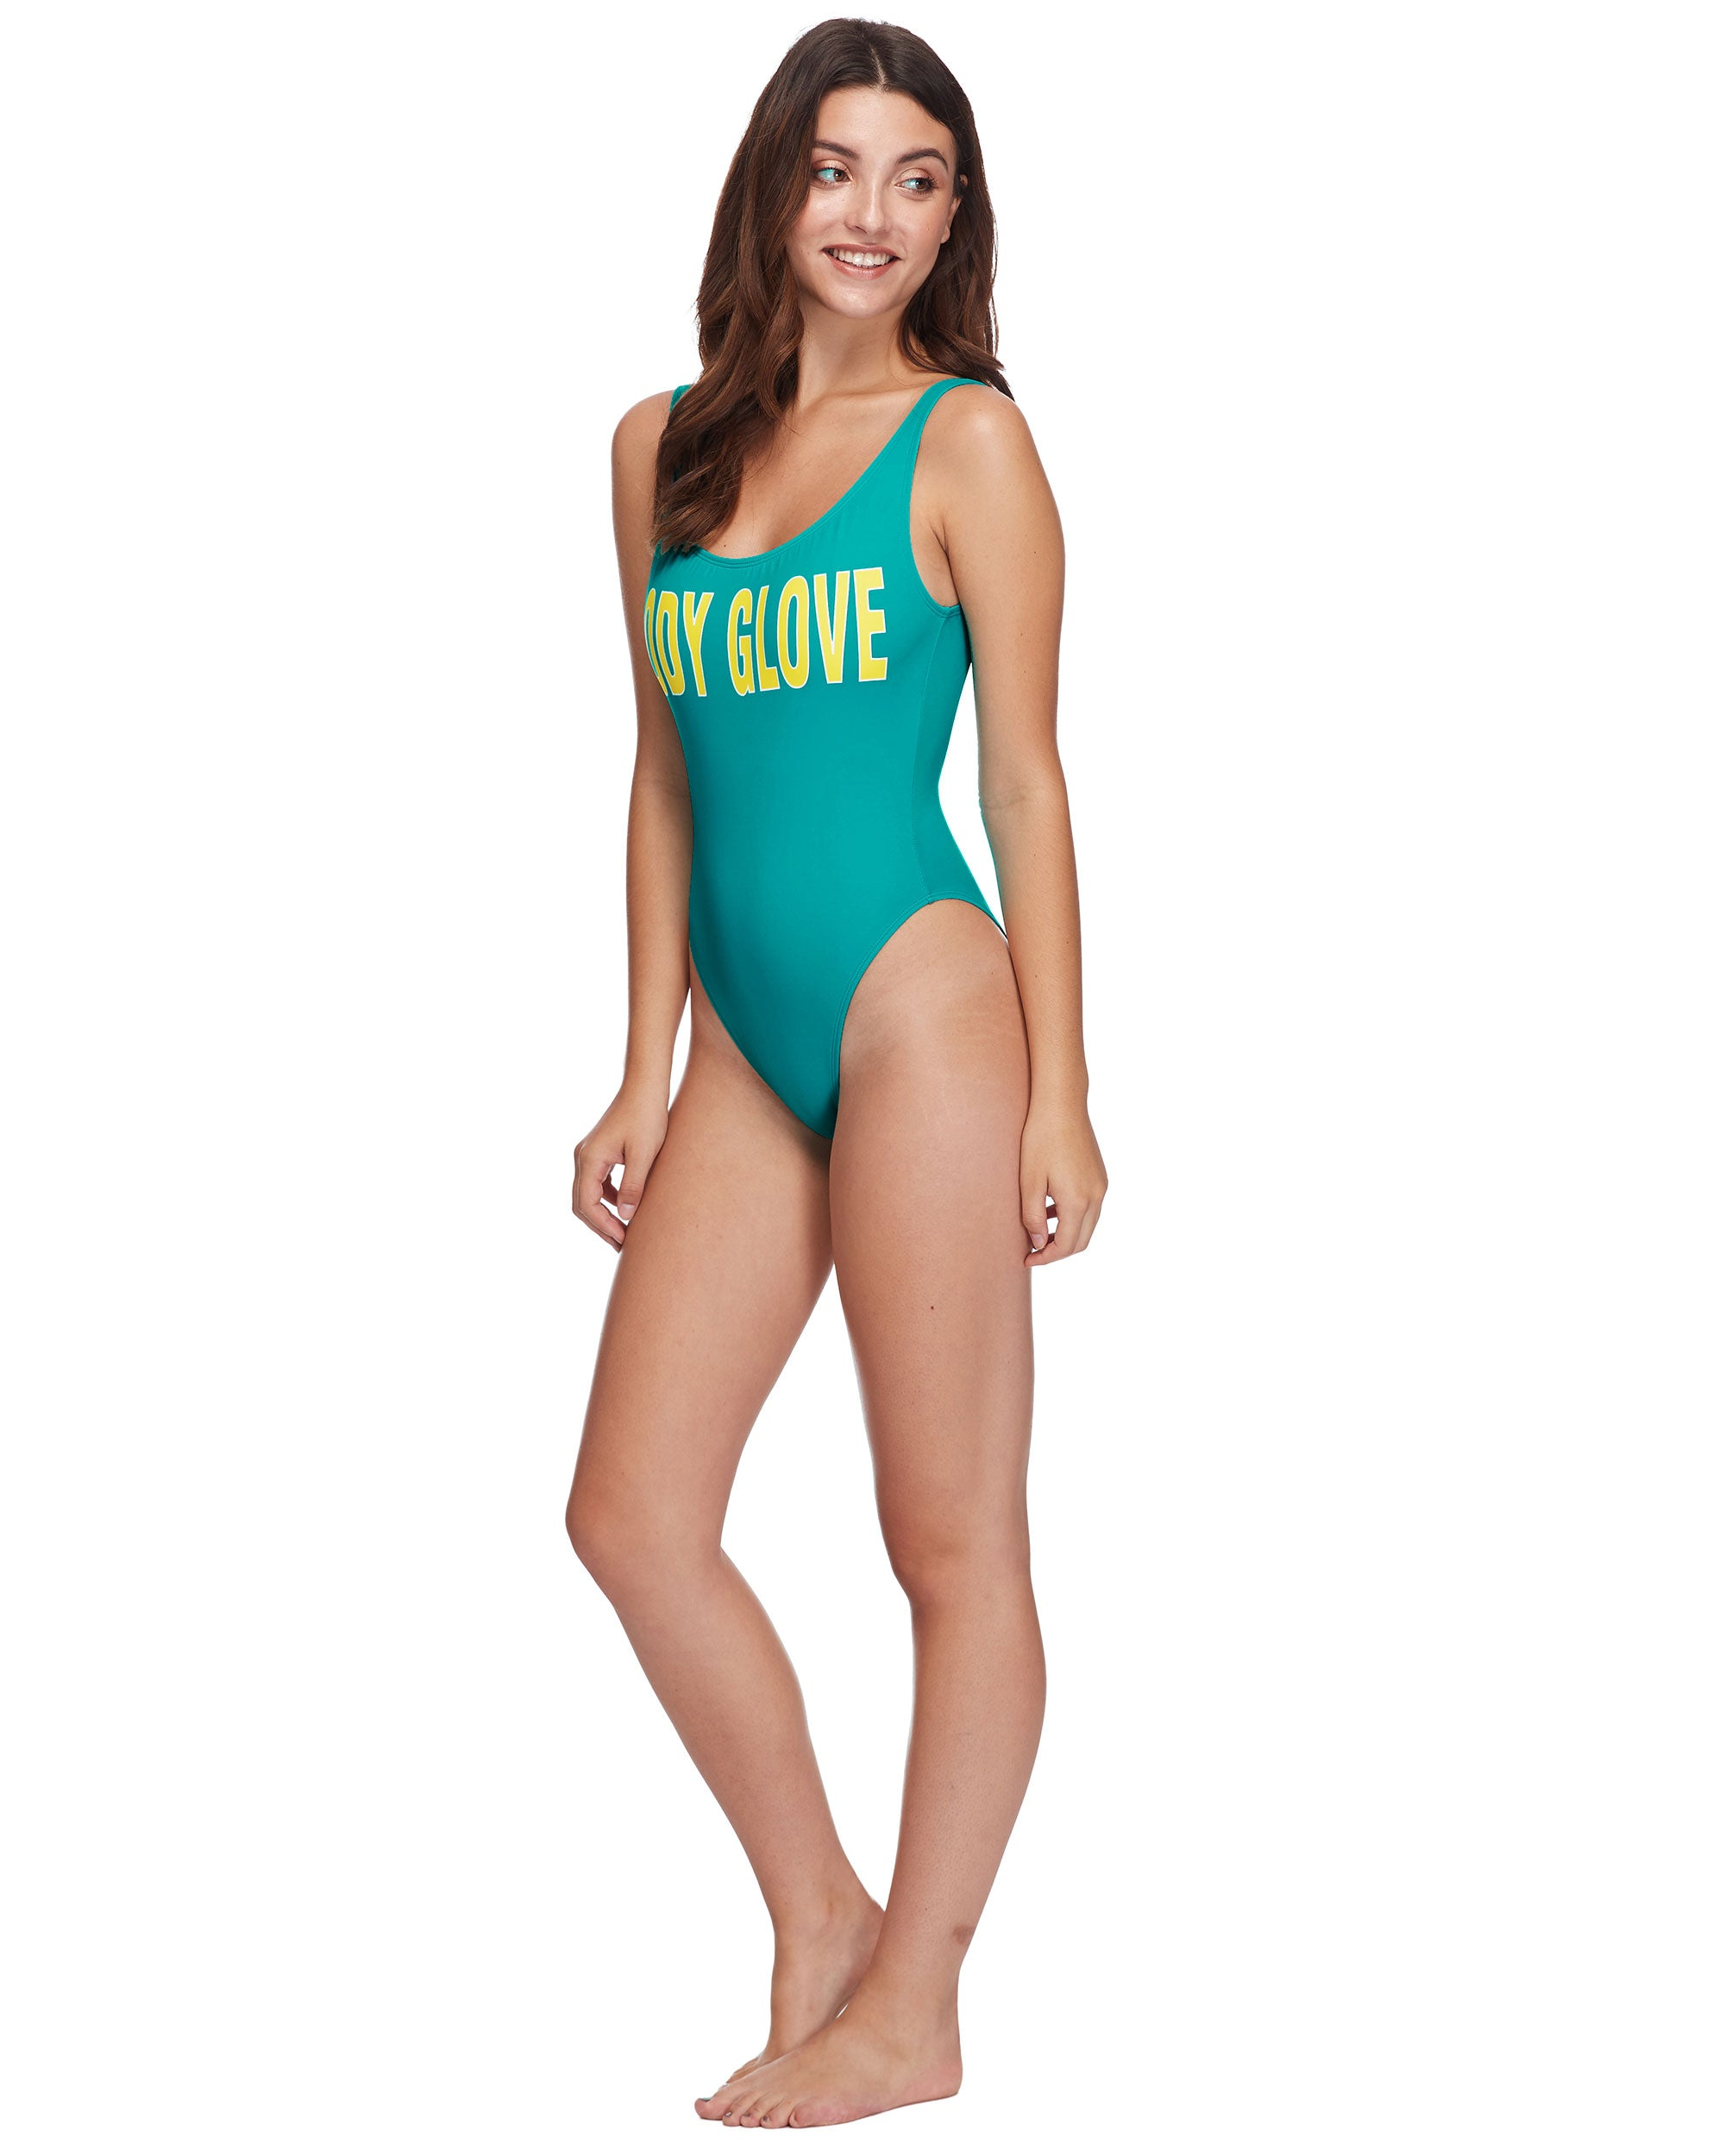 69be185737 Smoothies The Look One-Piece Swimsuit - Peacock – Body Glove